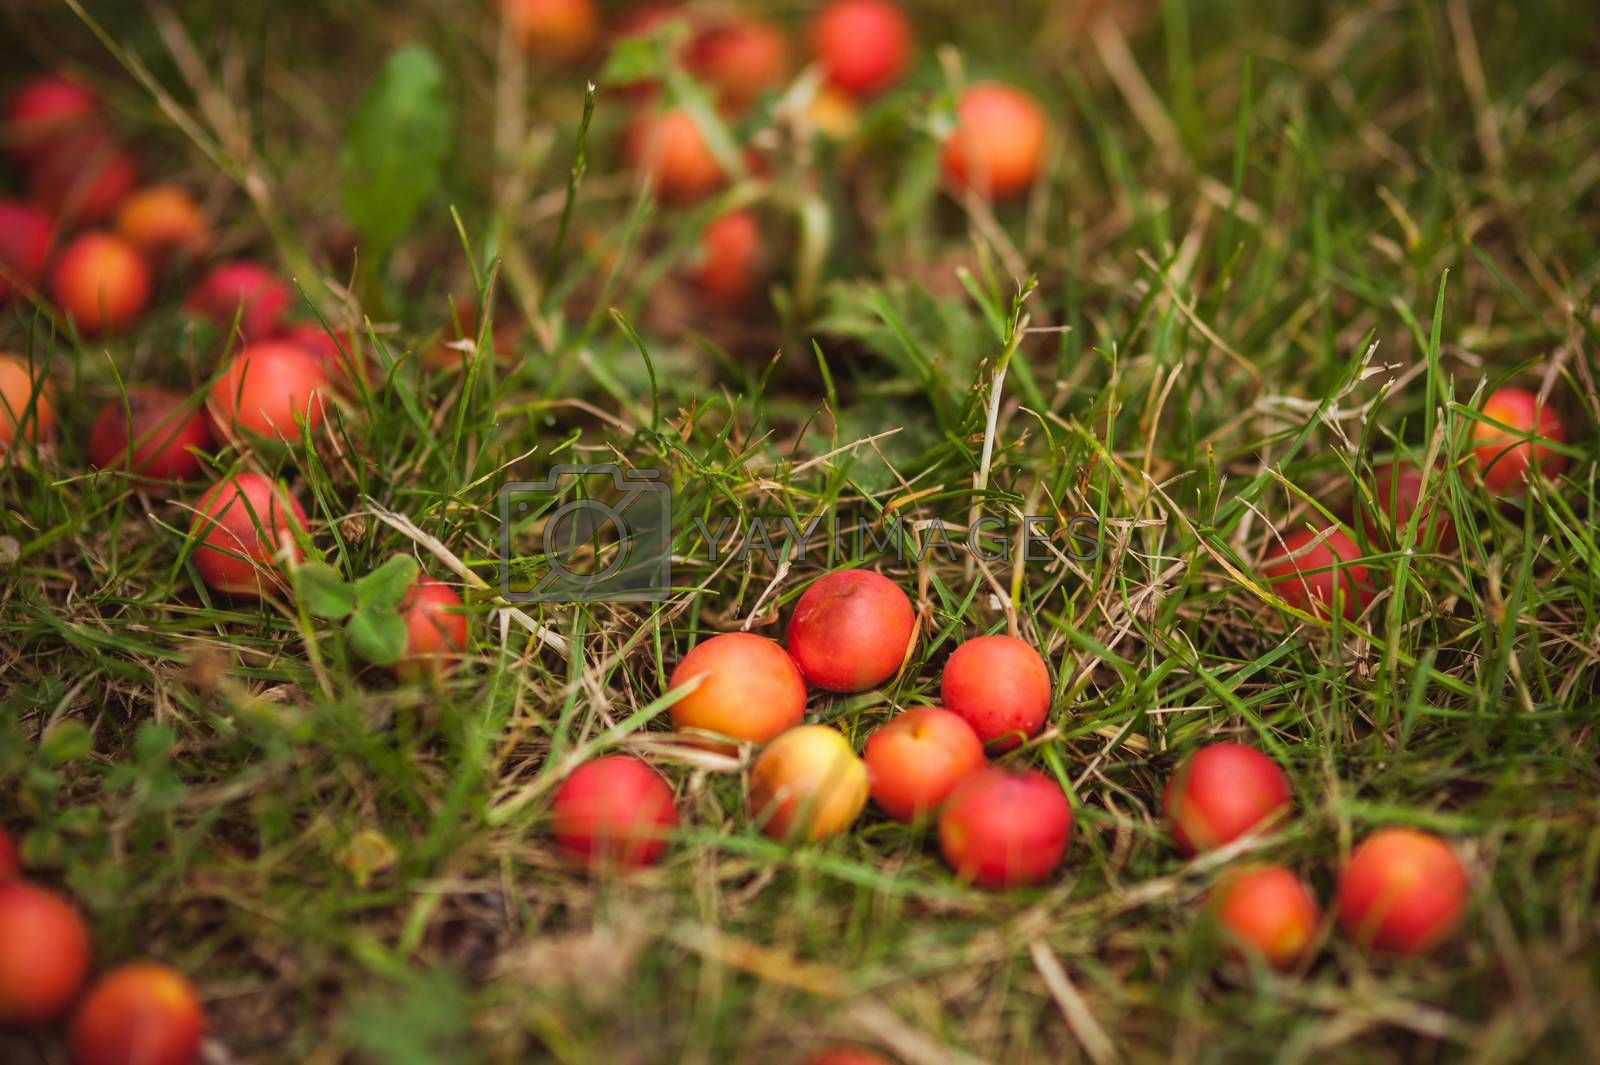 wild yellow plum on the ground in grass